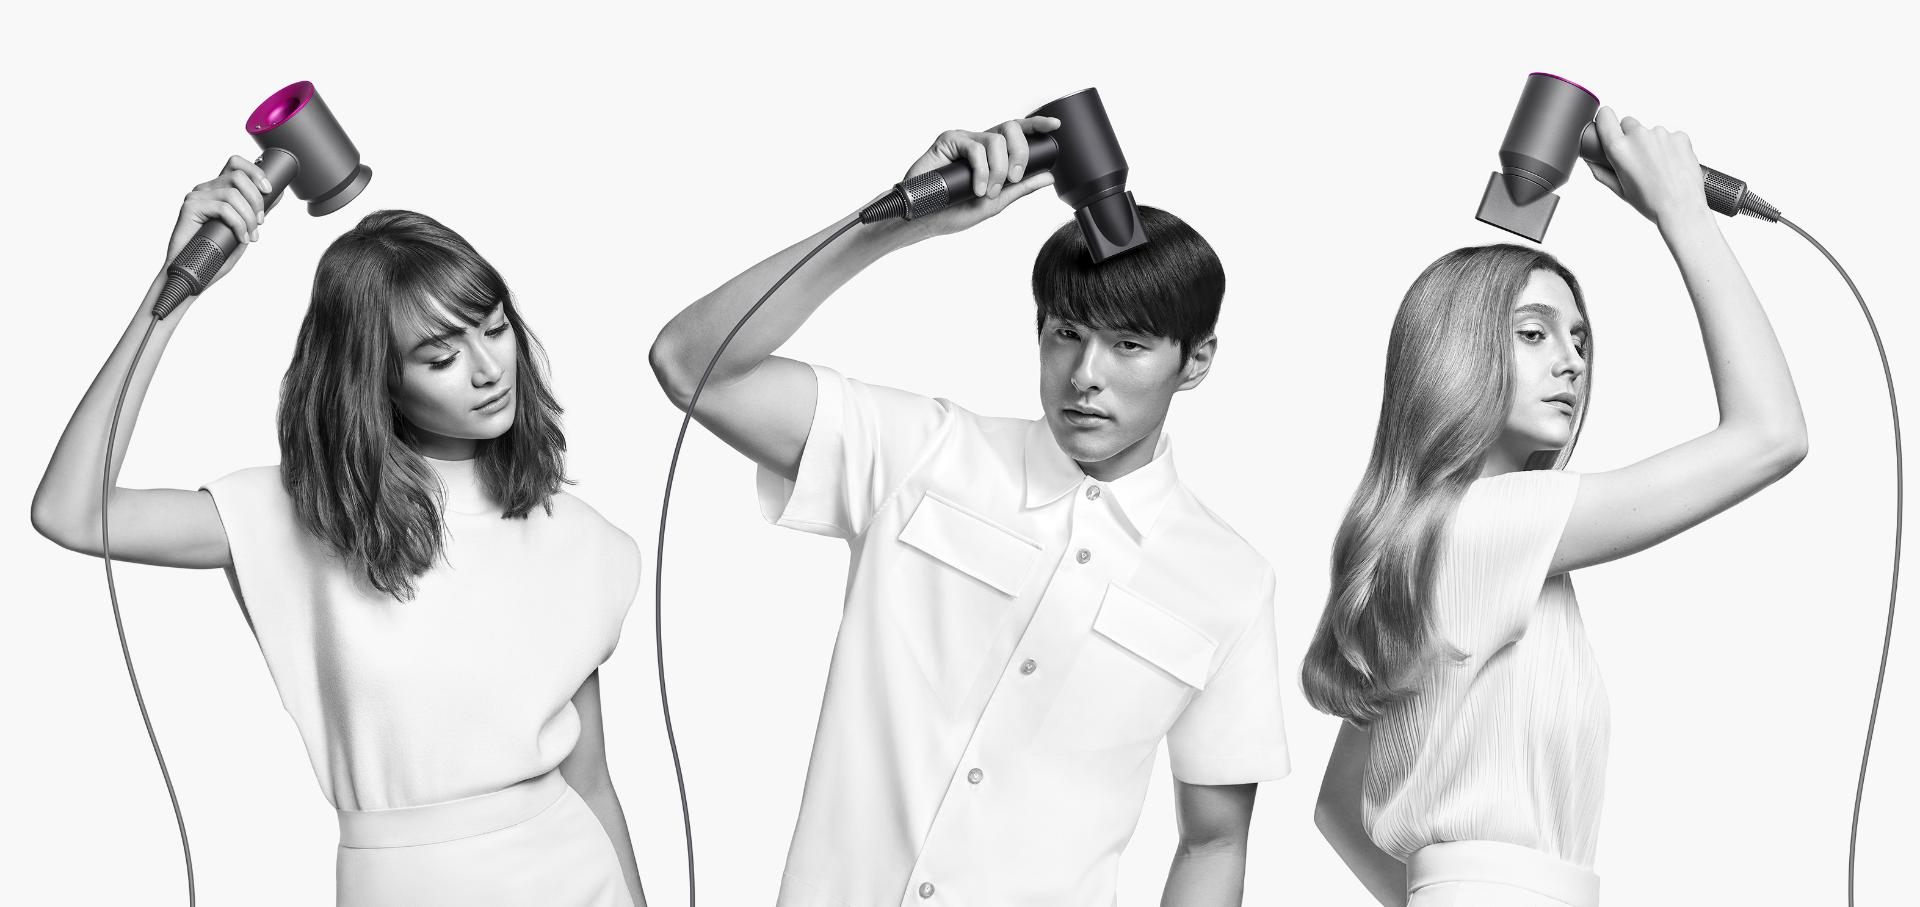 Three models with different hair types using different attachments to style their hair.